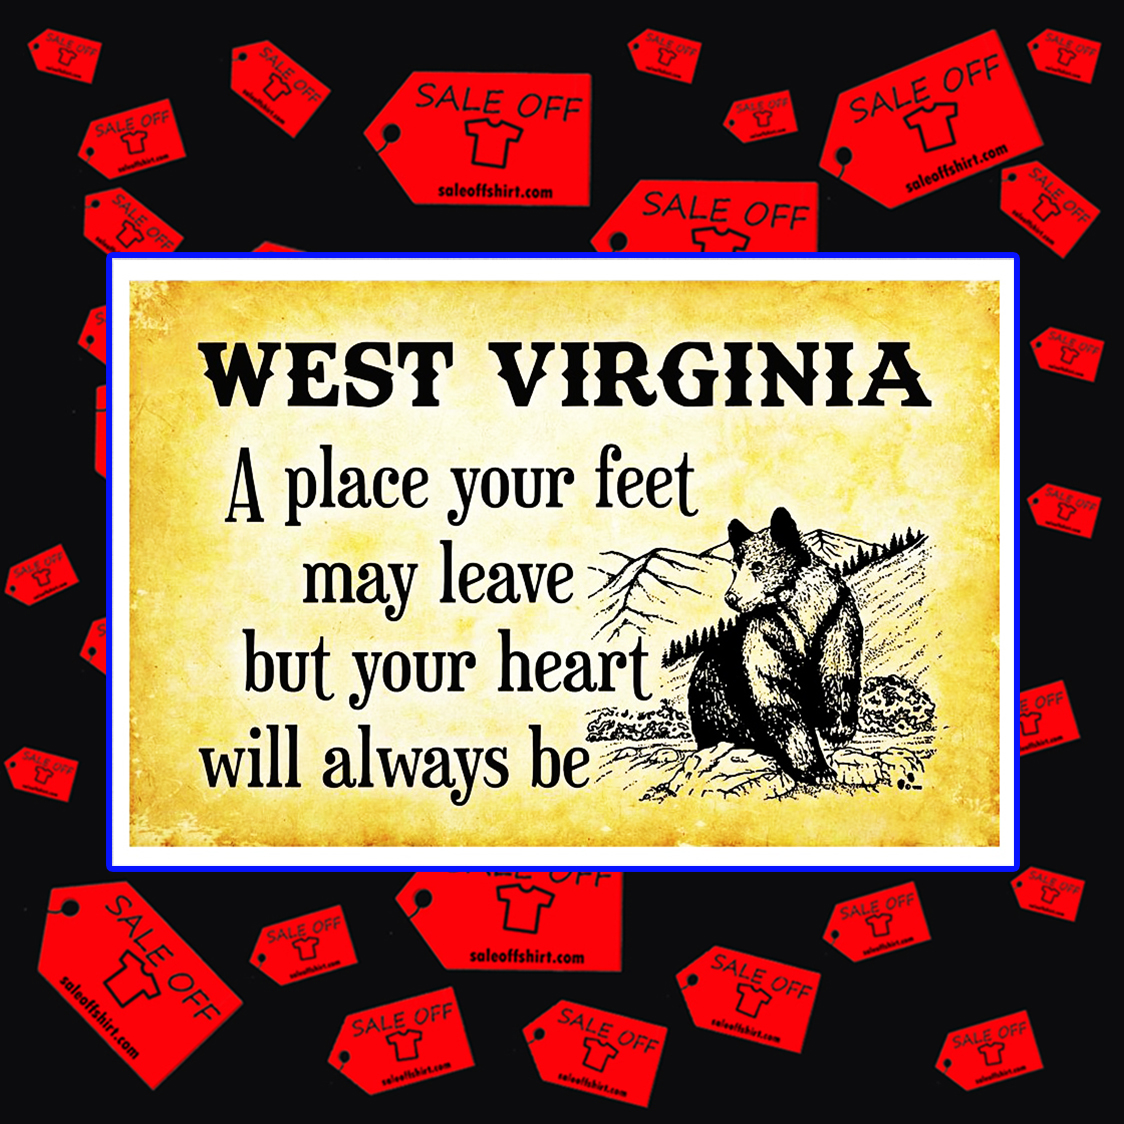 West Virginia a place your feet may leave but your heart will always be poster 17x11